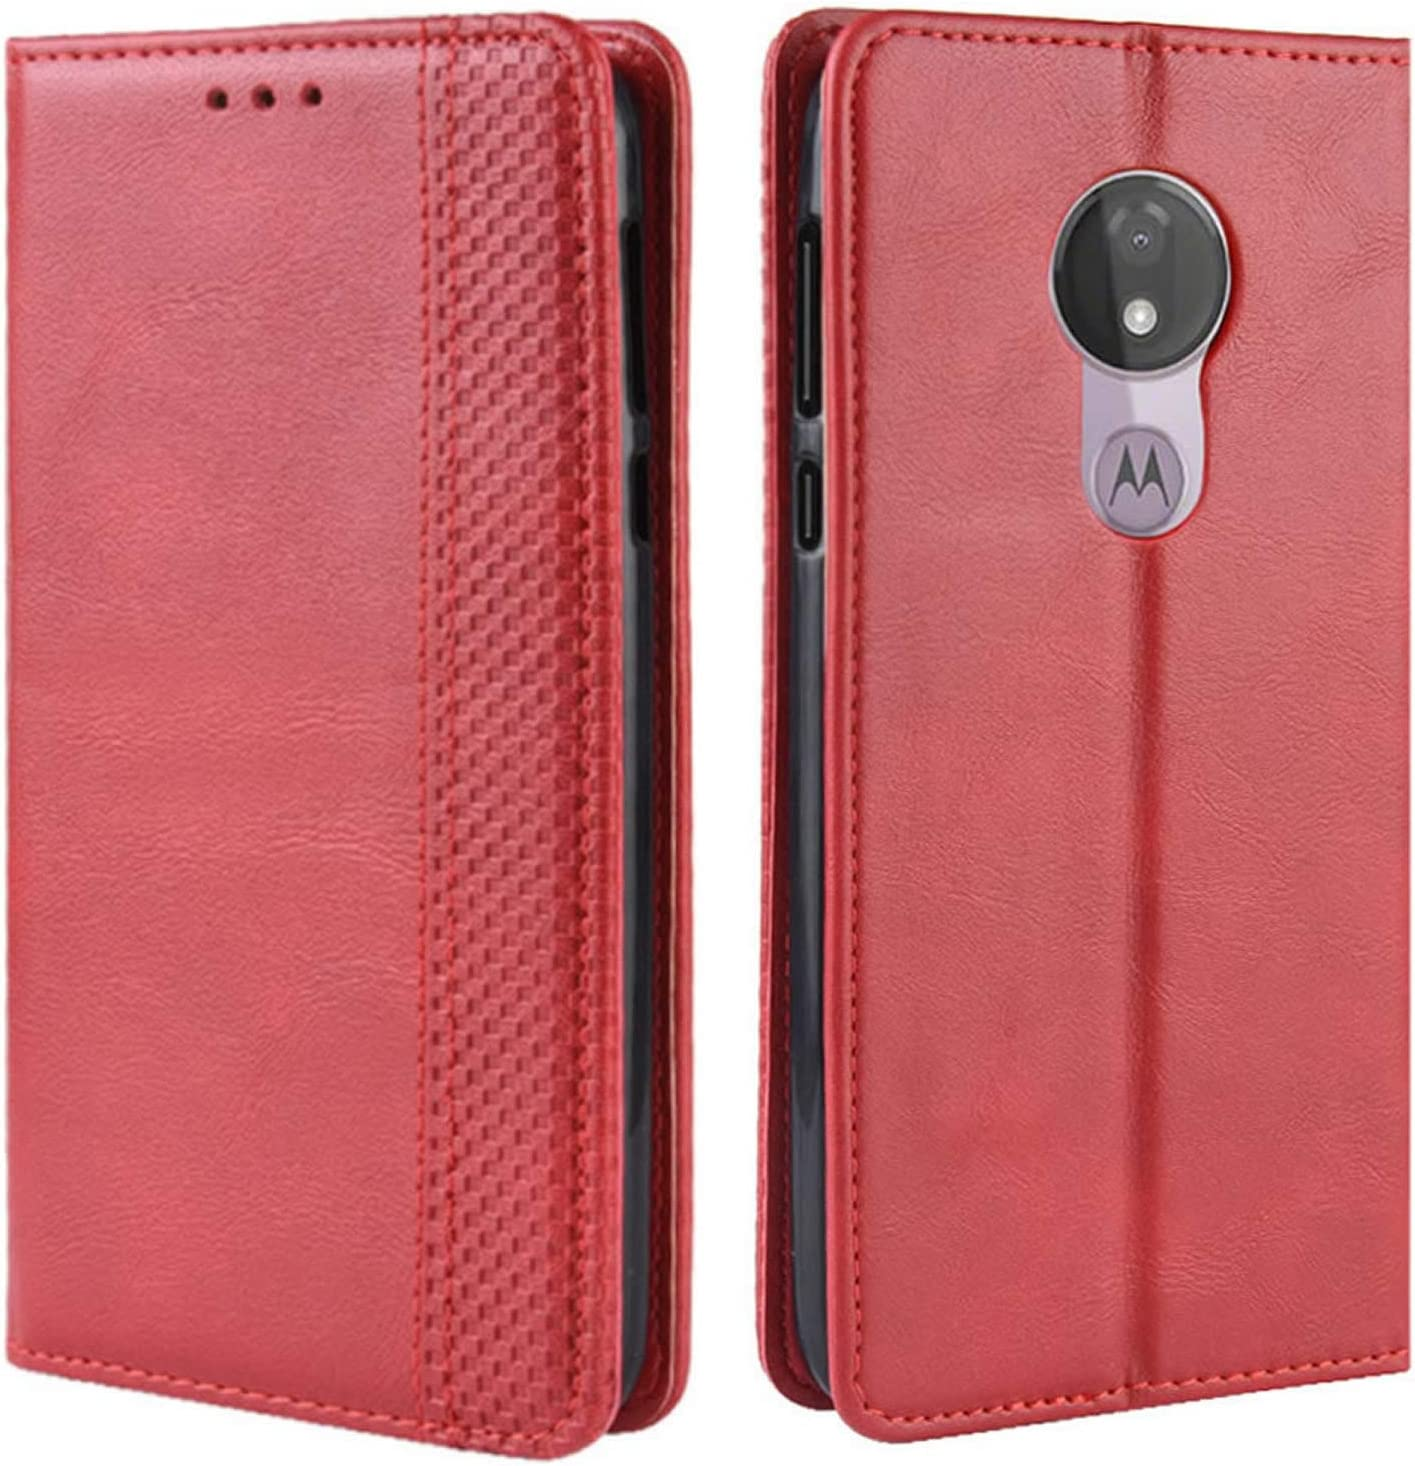 HualuBro Motorola Moto G7 Power Case, Moto G7 Supra Case, Moto G7 Optimo Maxx Case, Magnetic Full Body Shockproof Flip Leather Wallet Case Cover with Card Holder for Moto G7 Power Phone Case (Red)